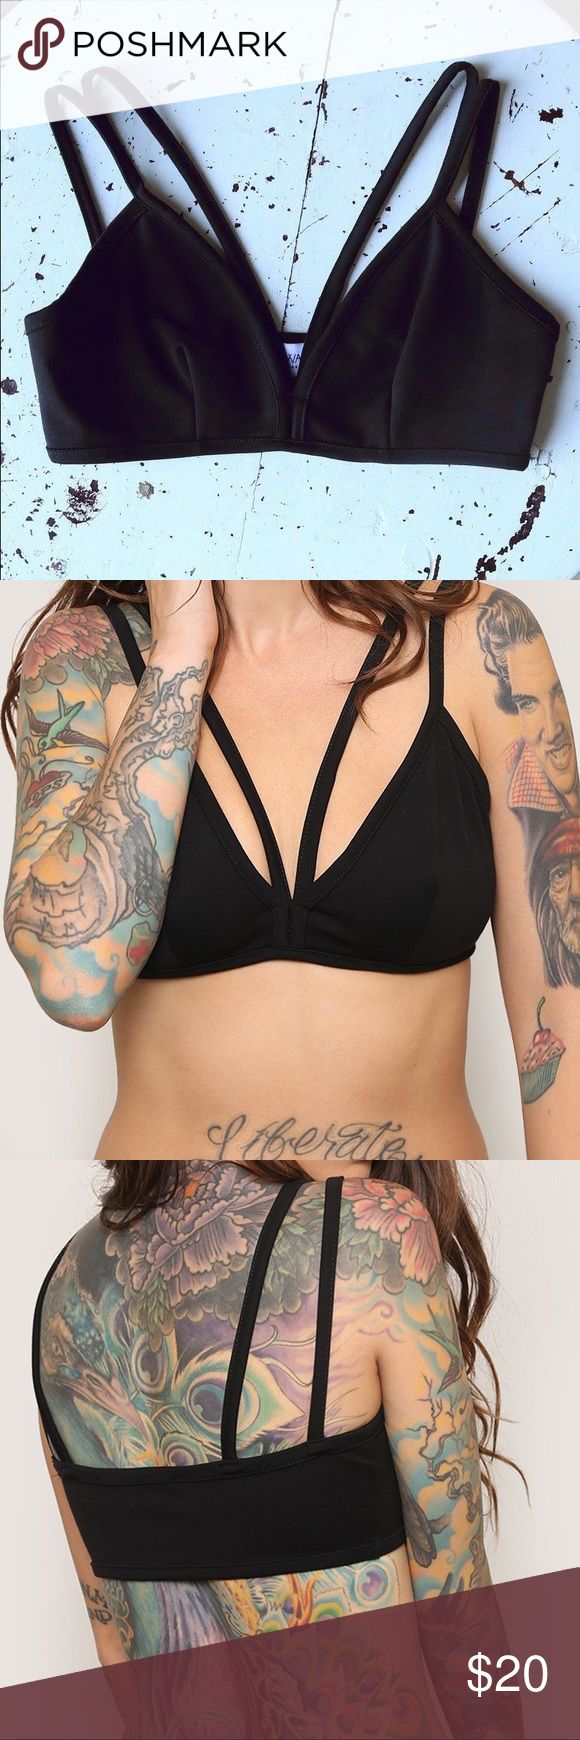 Phases Strappy Bralette This will really up your intimates game. Black & stretchy bralette, featuring a triangle cup with a V-neckline and a strappy front. Pair it with a mesh blouse and skinnies or under a low cut tee! Not adjustable. Gypsy Warrior Intimates & Sleepwear Bras